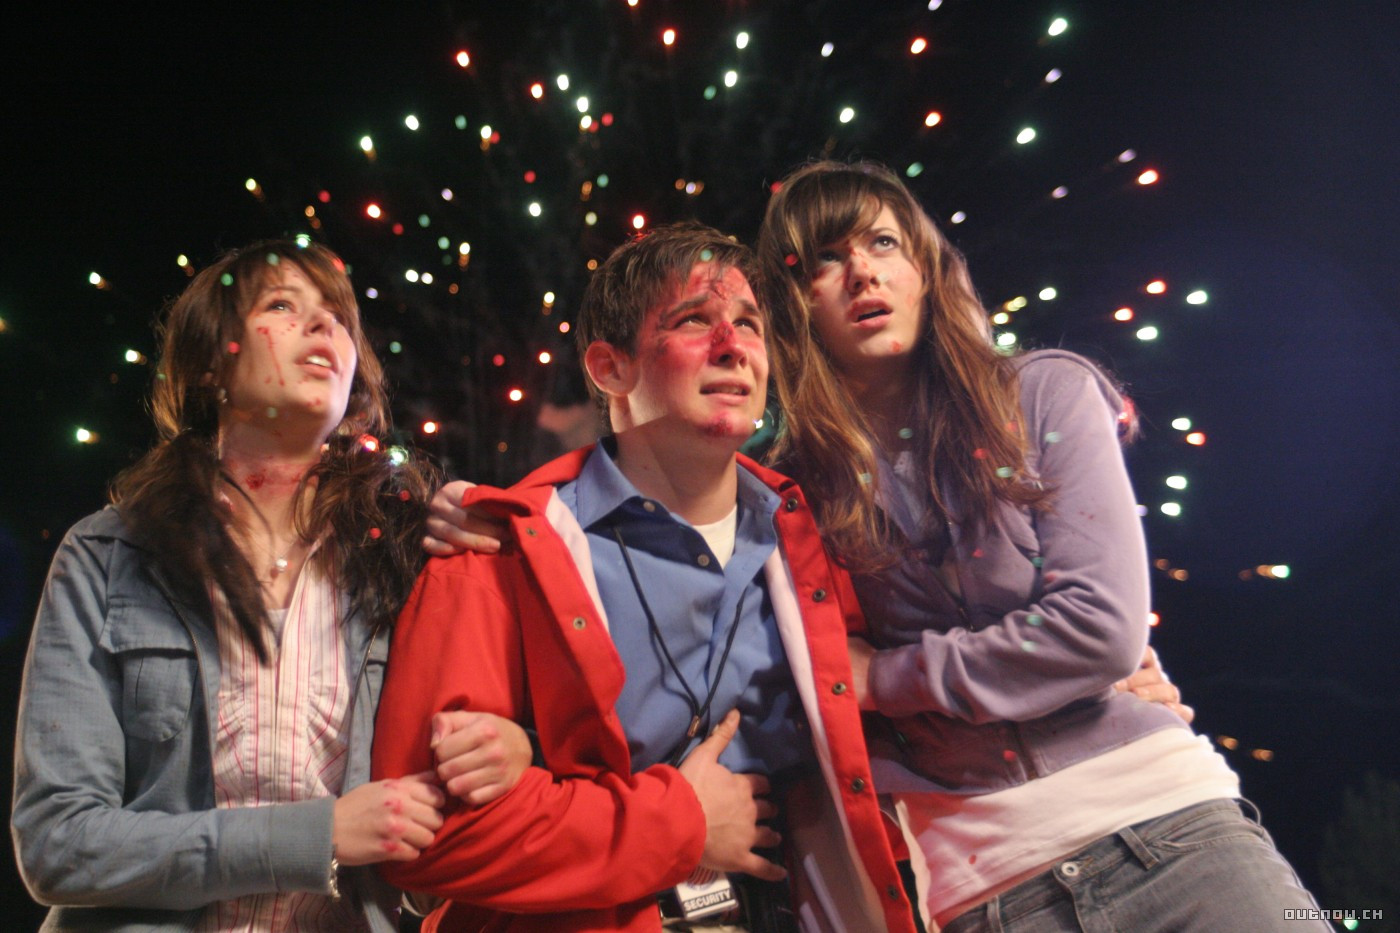 Amanda Crew, Ryan Merriman and Mary Elizabeth Winstead pick themselves up in the aftermath of a rollercoaster accident in Final Destination 3 (2006)